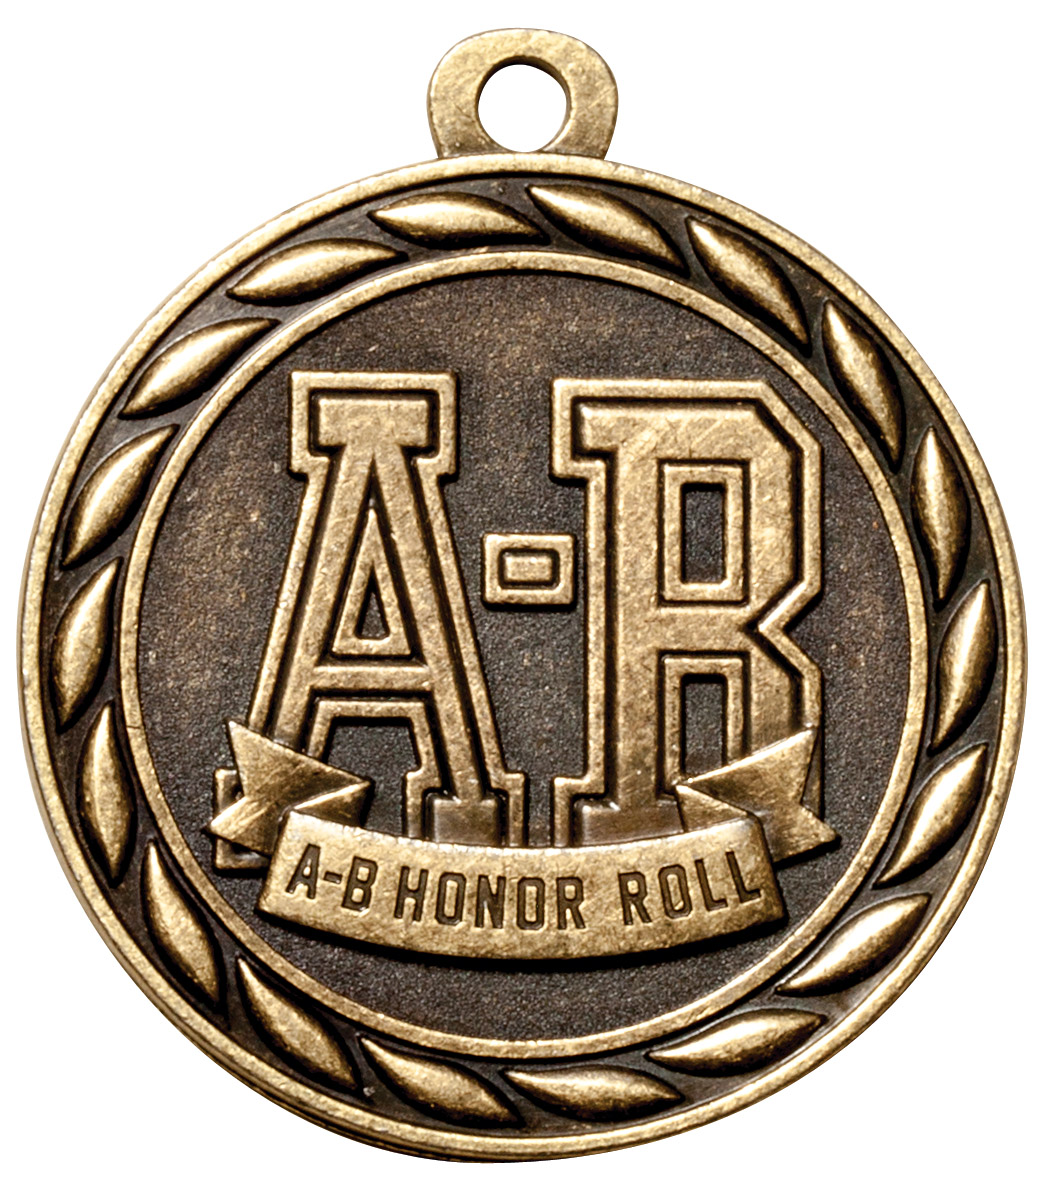 M312-MS - A-B Honor Roll Medal (Gold Only)